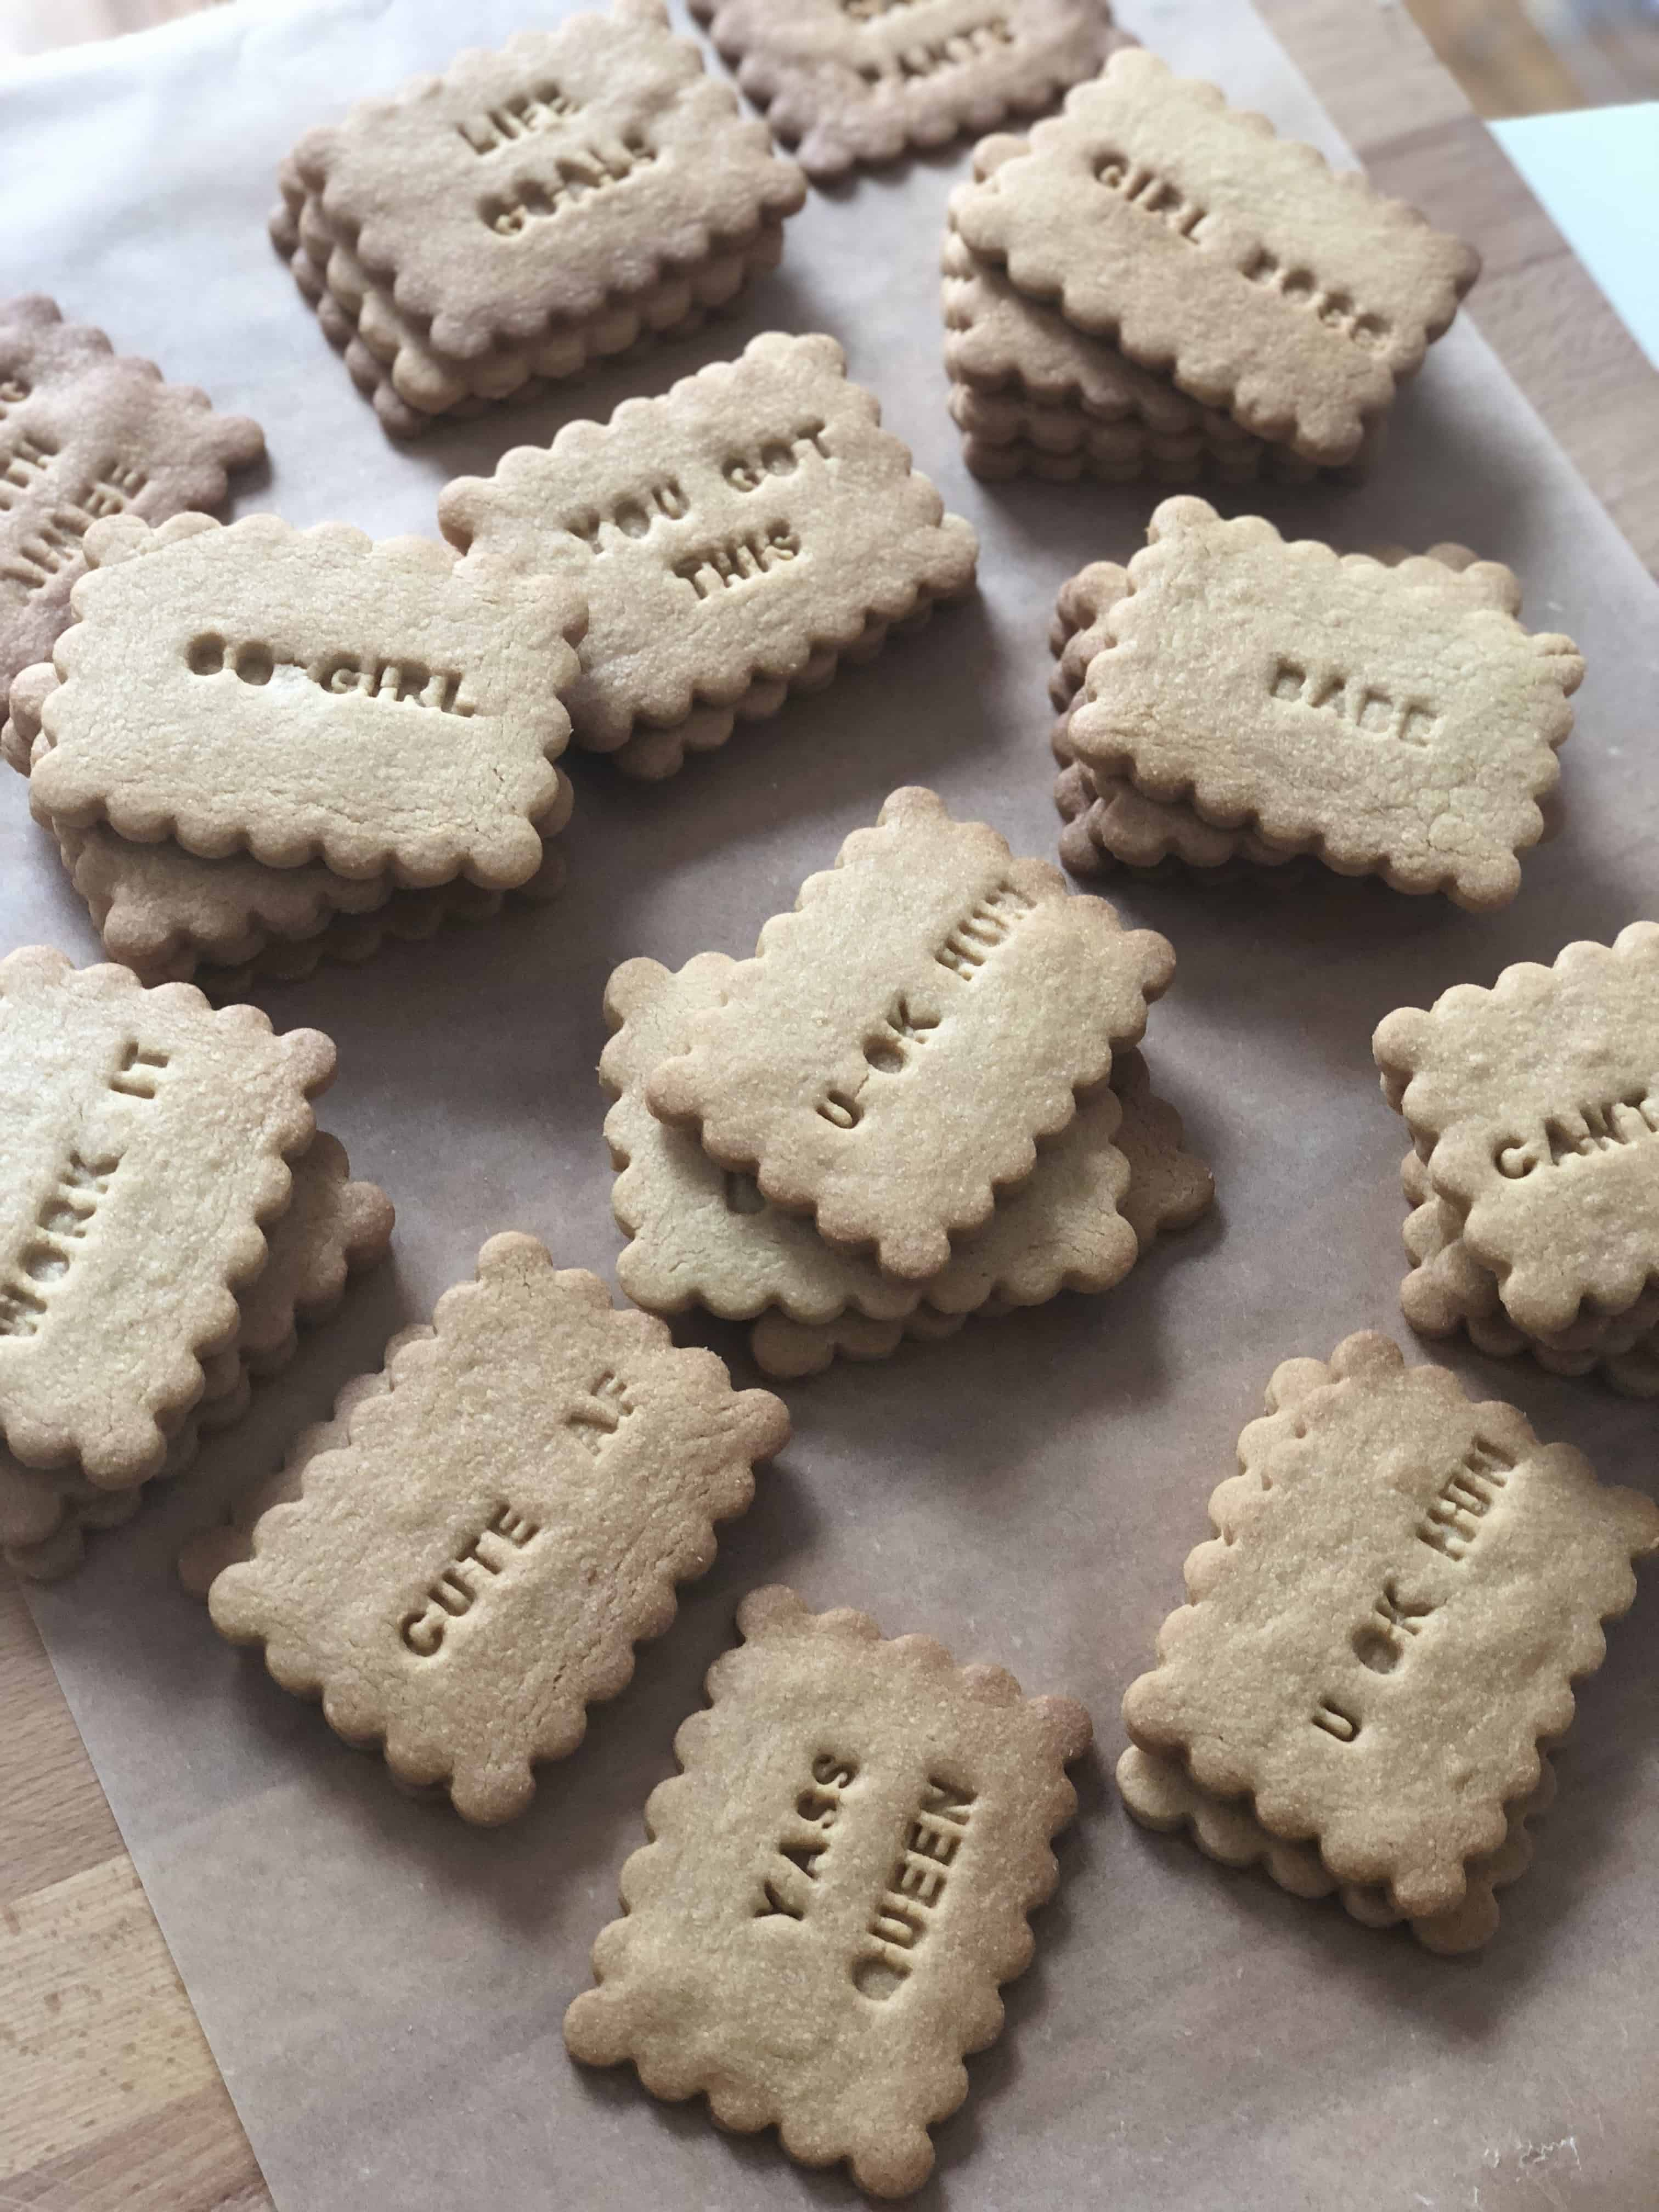 Sassy peanut butter biscuits baking with aimee i hope these sassy biscuits make you smile and youre inspired to create your own you can find the exact letterpress set i used here solutioingenieria Gallery